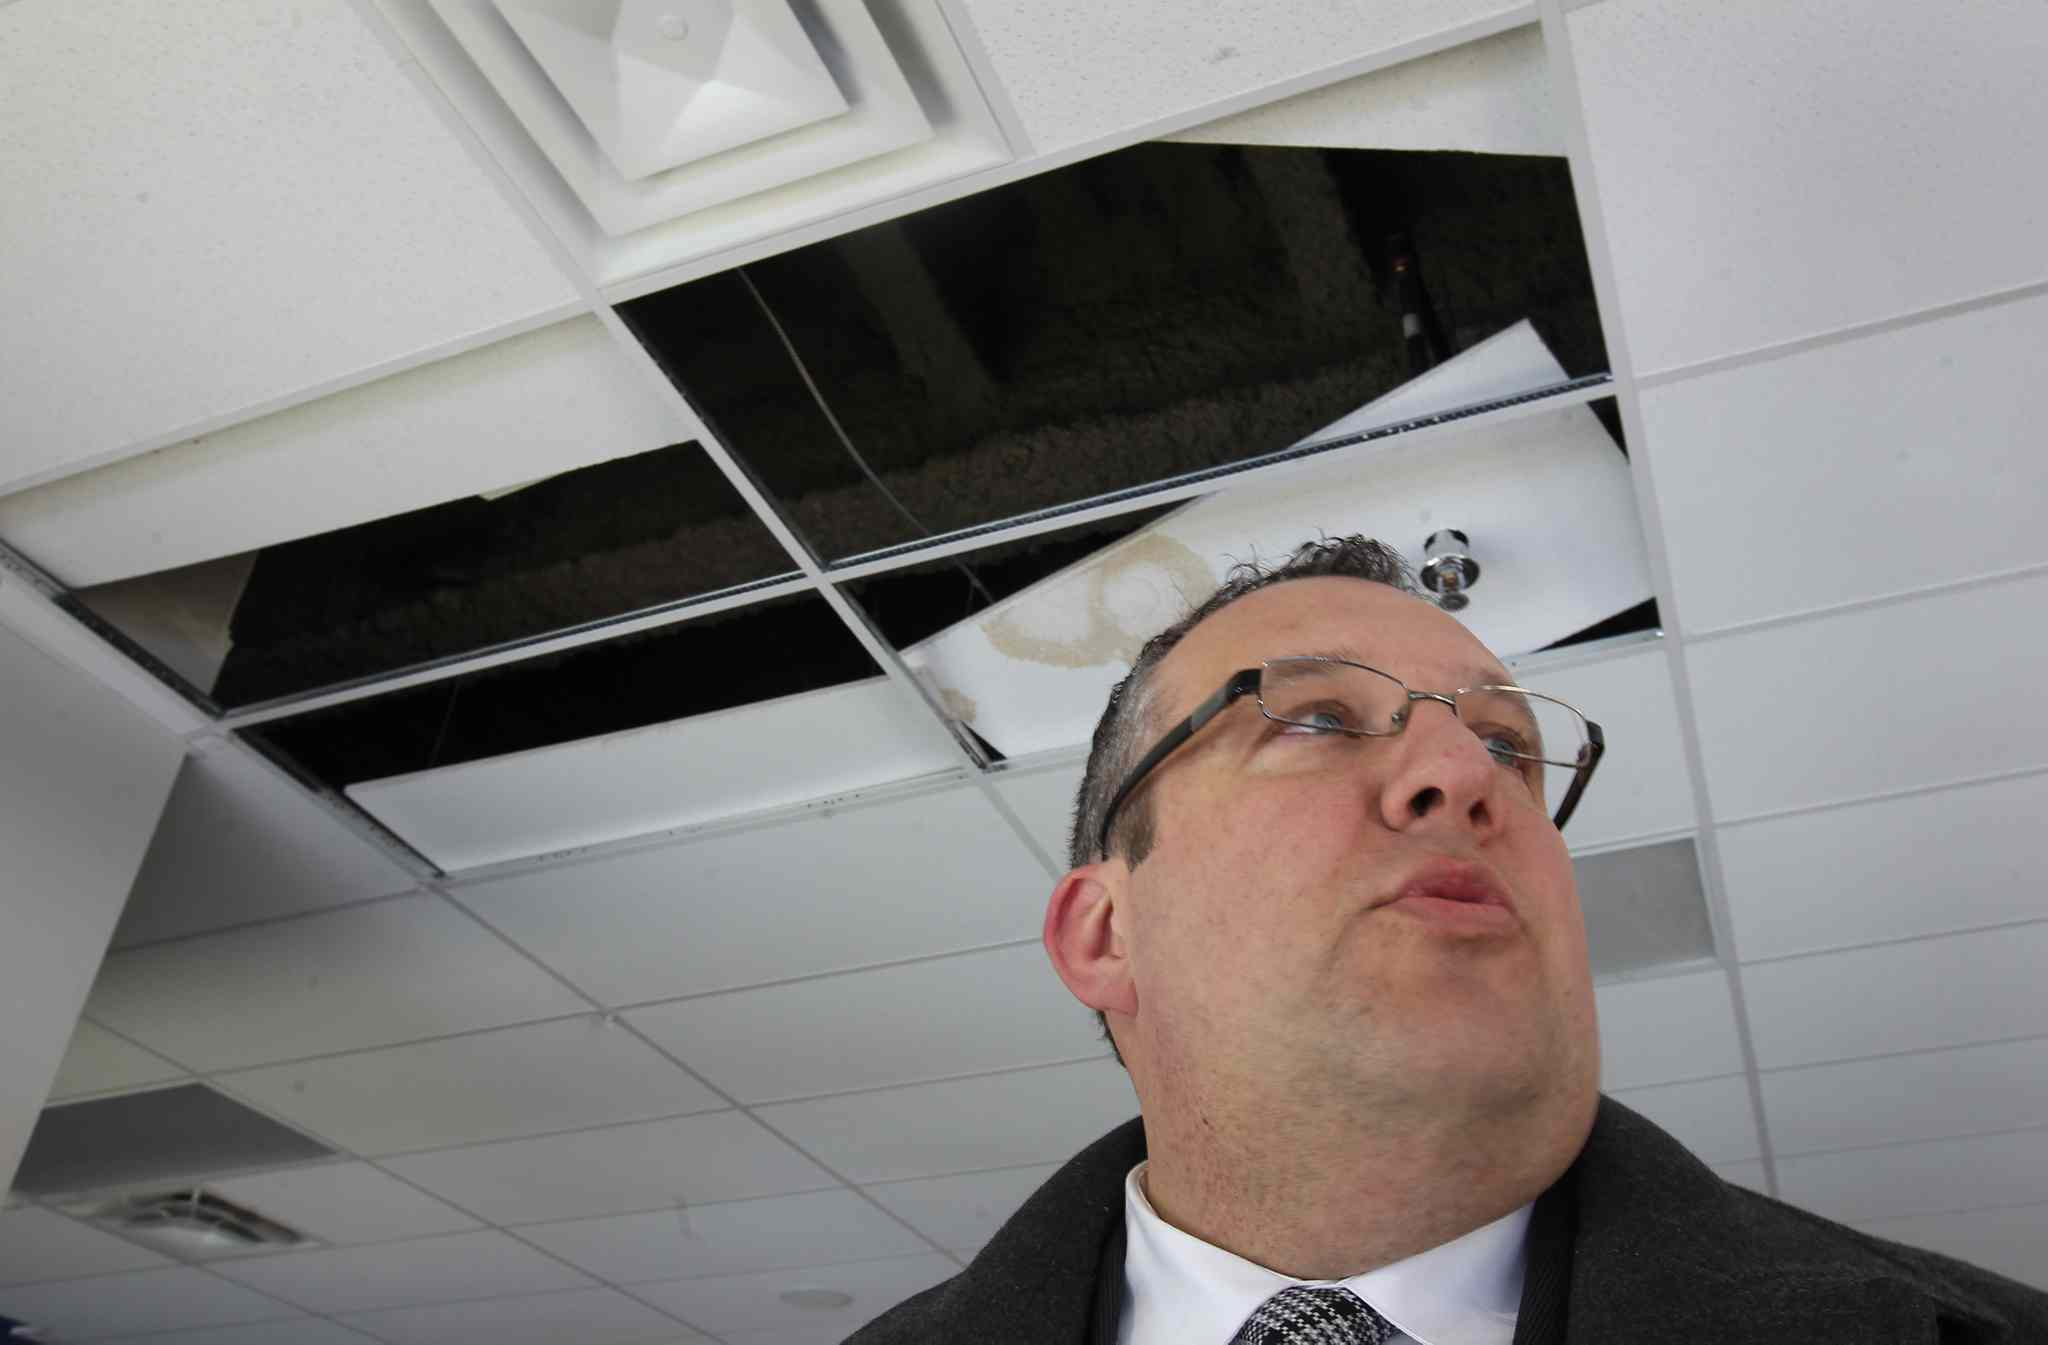 Andrew Konowalchuk, chair of BBB Stadium Inc., announced that today the company will file a lawsuit  against architect and contractor for repairs required to the two-year-old Investors Group Field. Here he shows damaged tiles in a luxury suite.